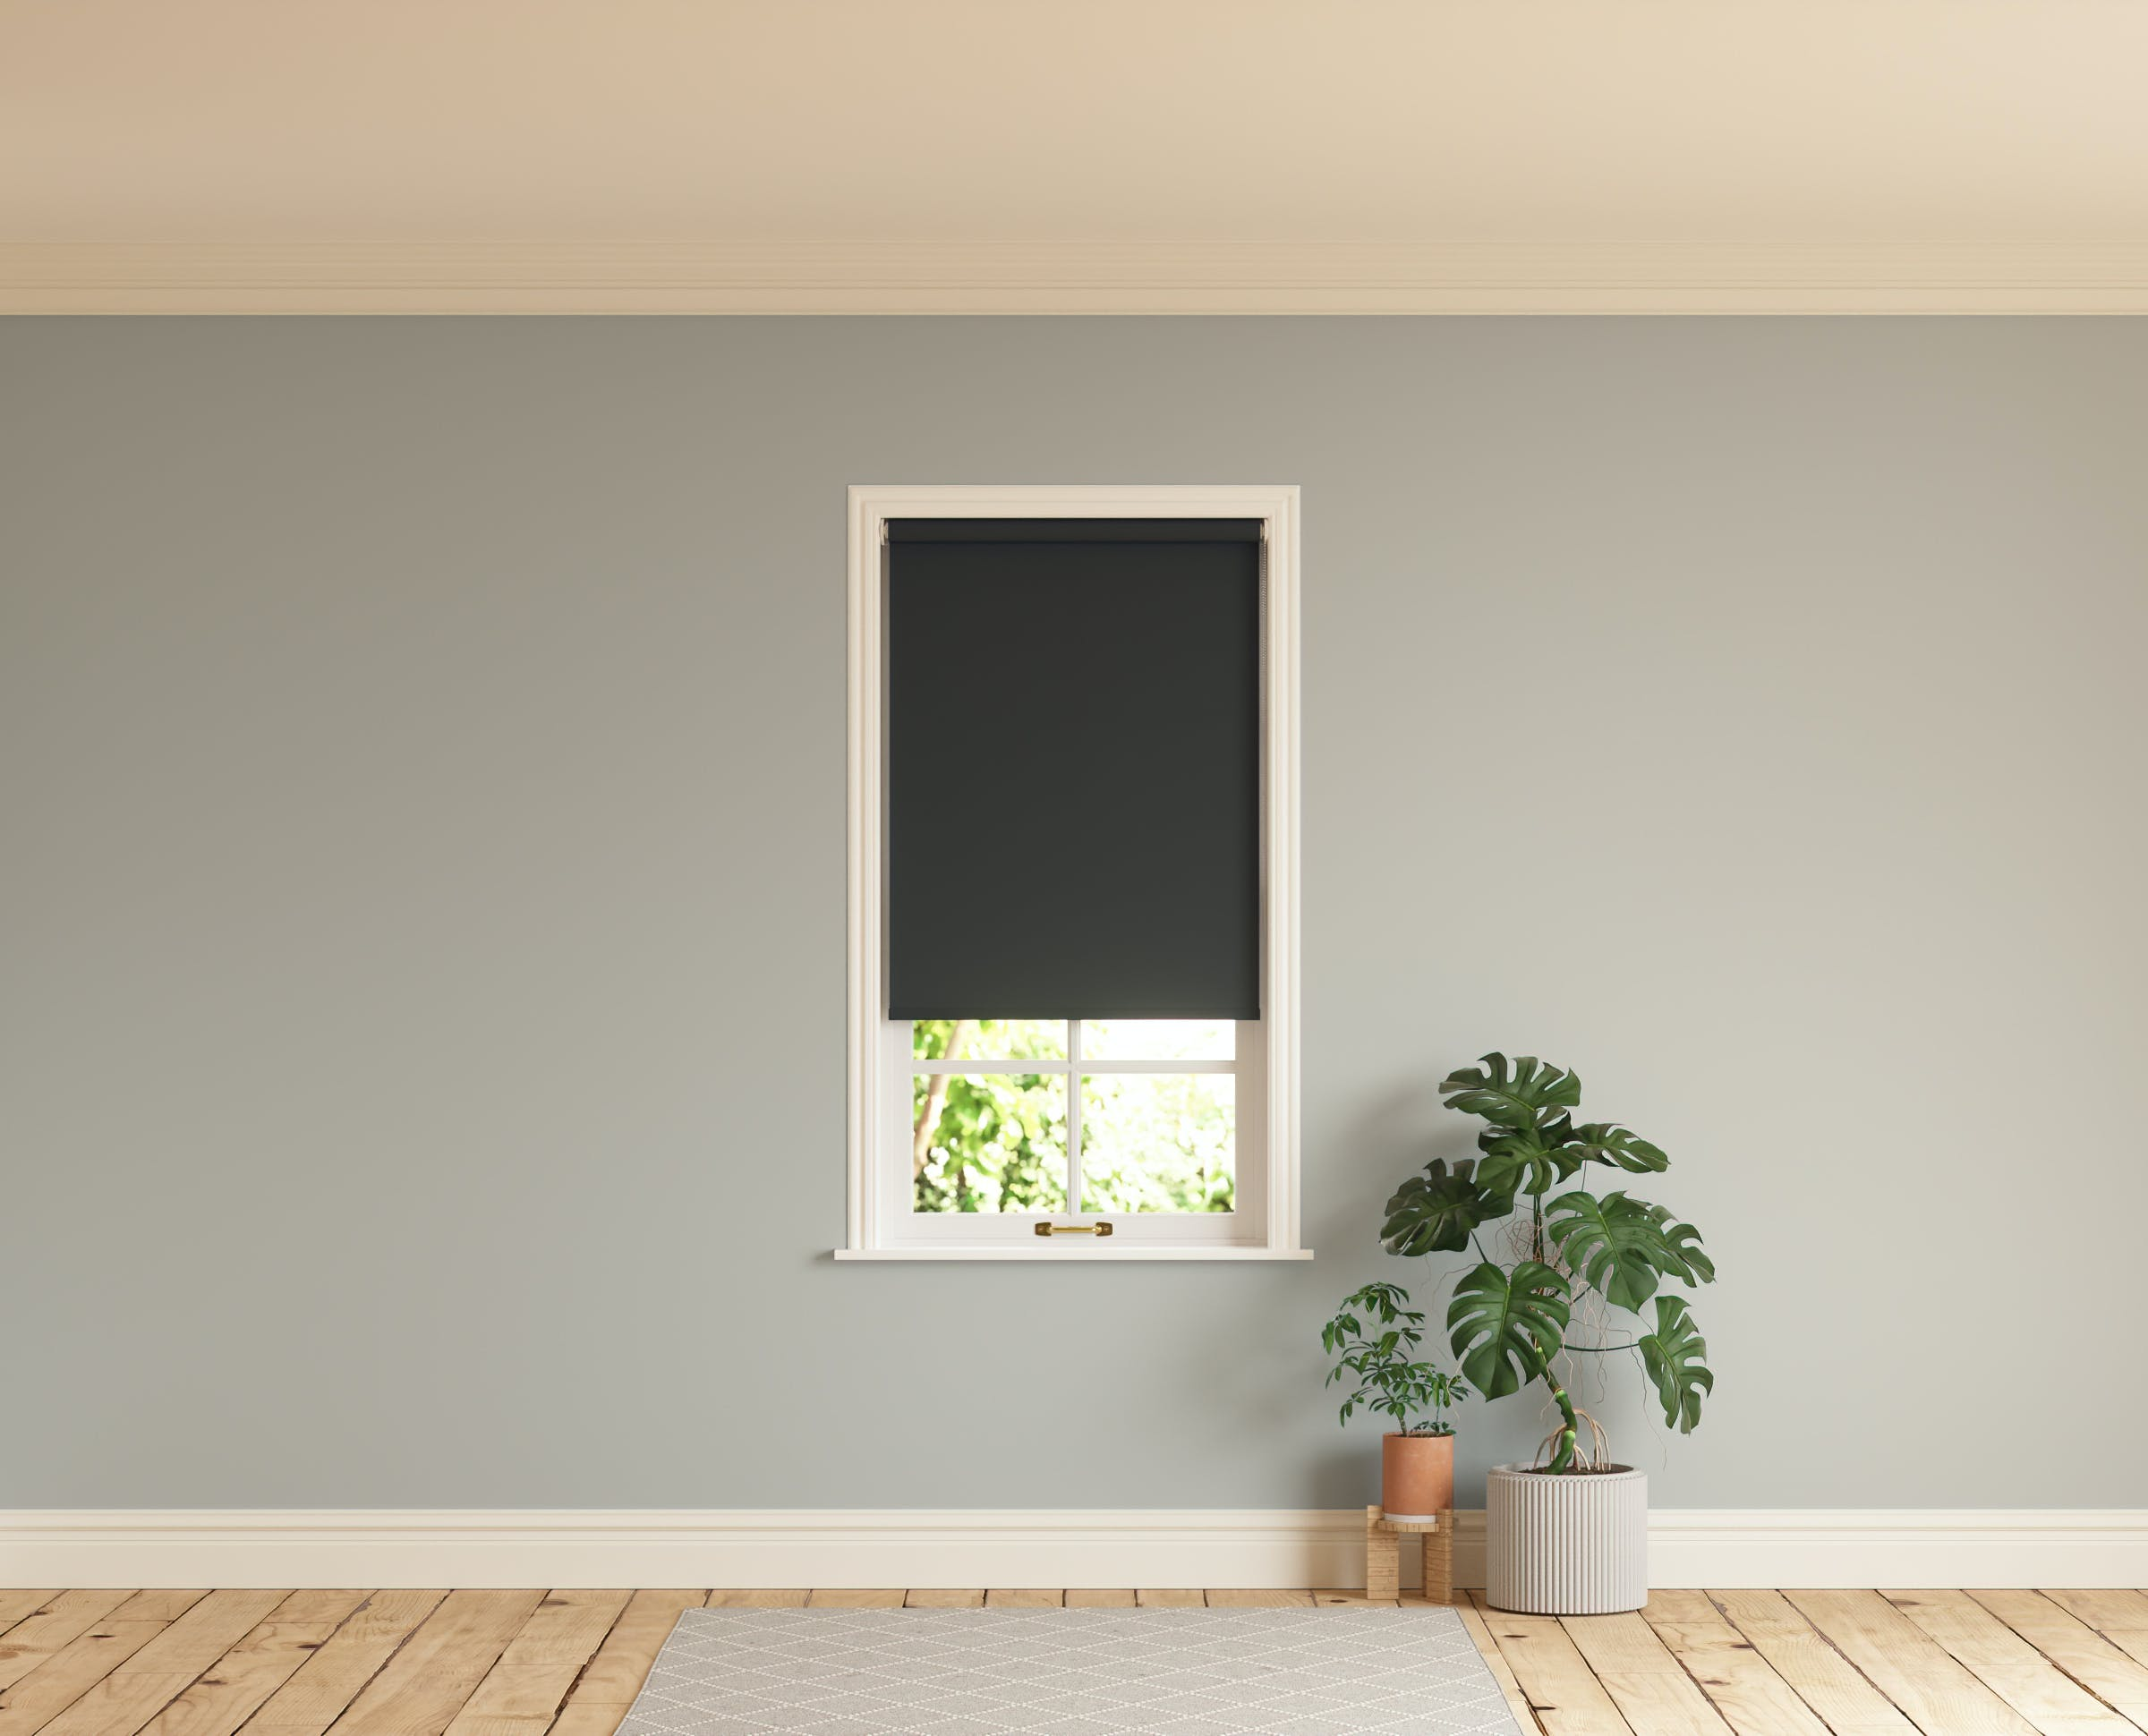 Room with walls painted in Lick Grey 04 and Black 02 roller blinds